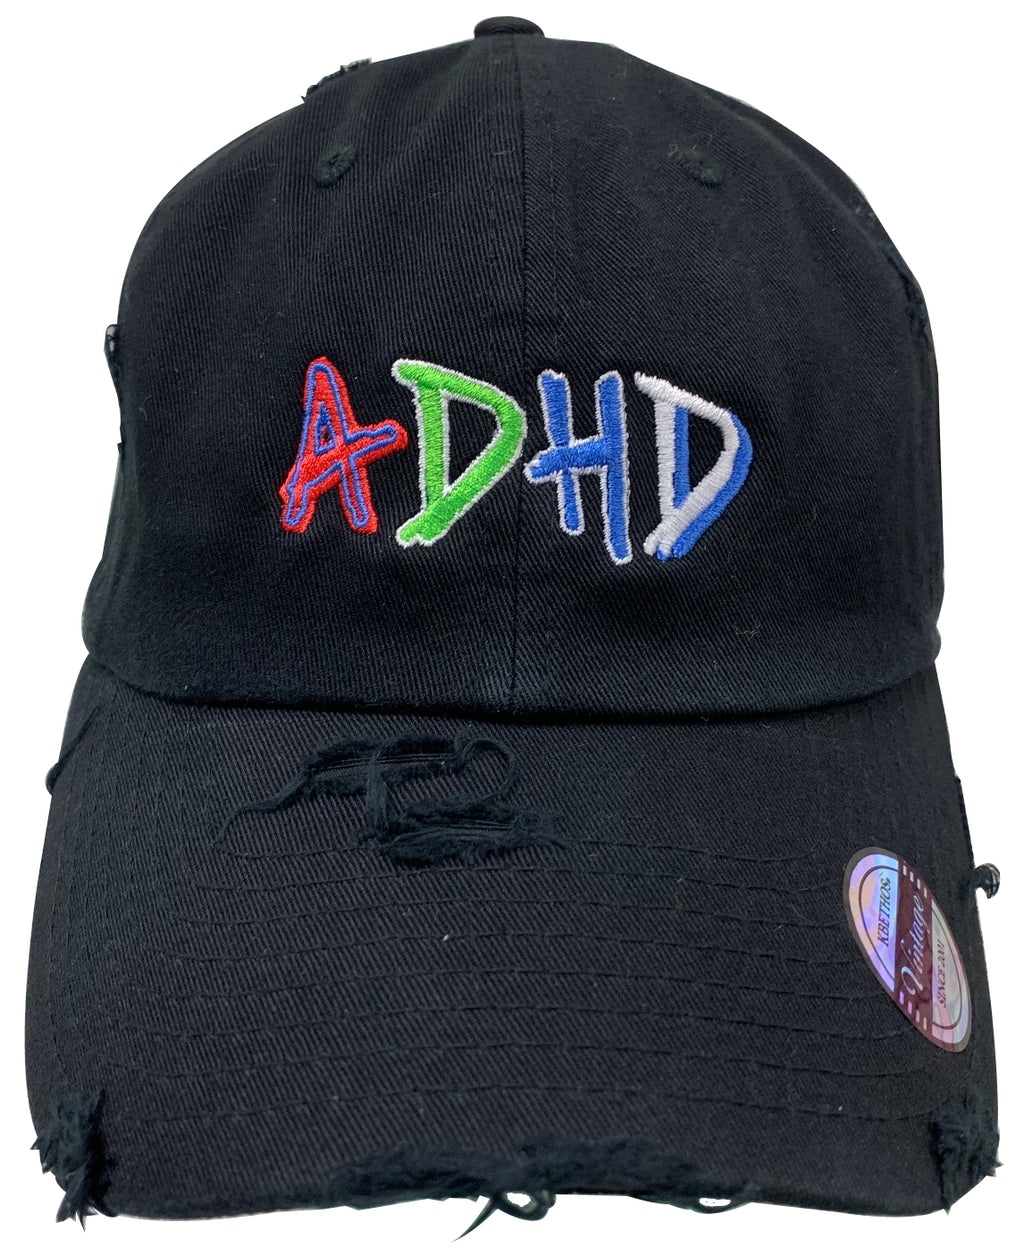 Black ADHD Dad Hat + Instant ADHD Digital Download + PRE ORDER